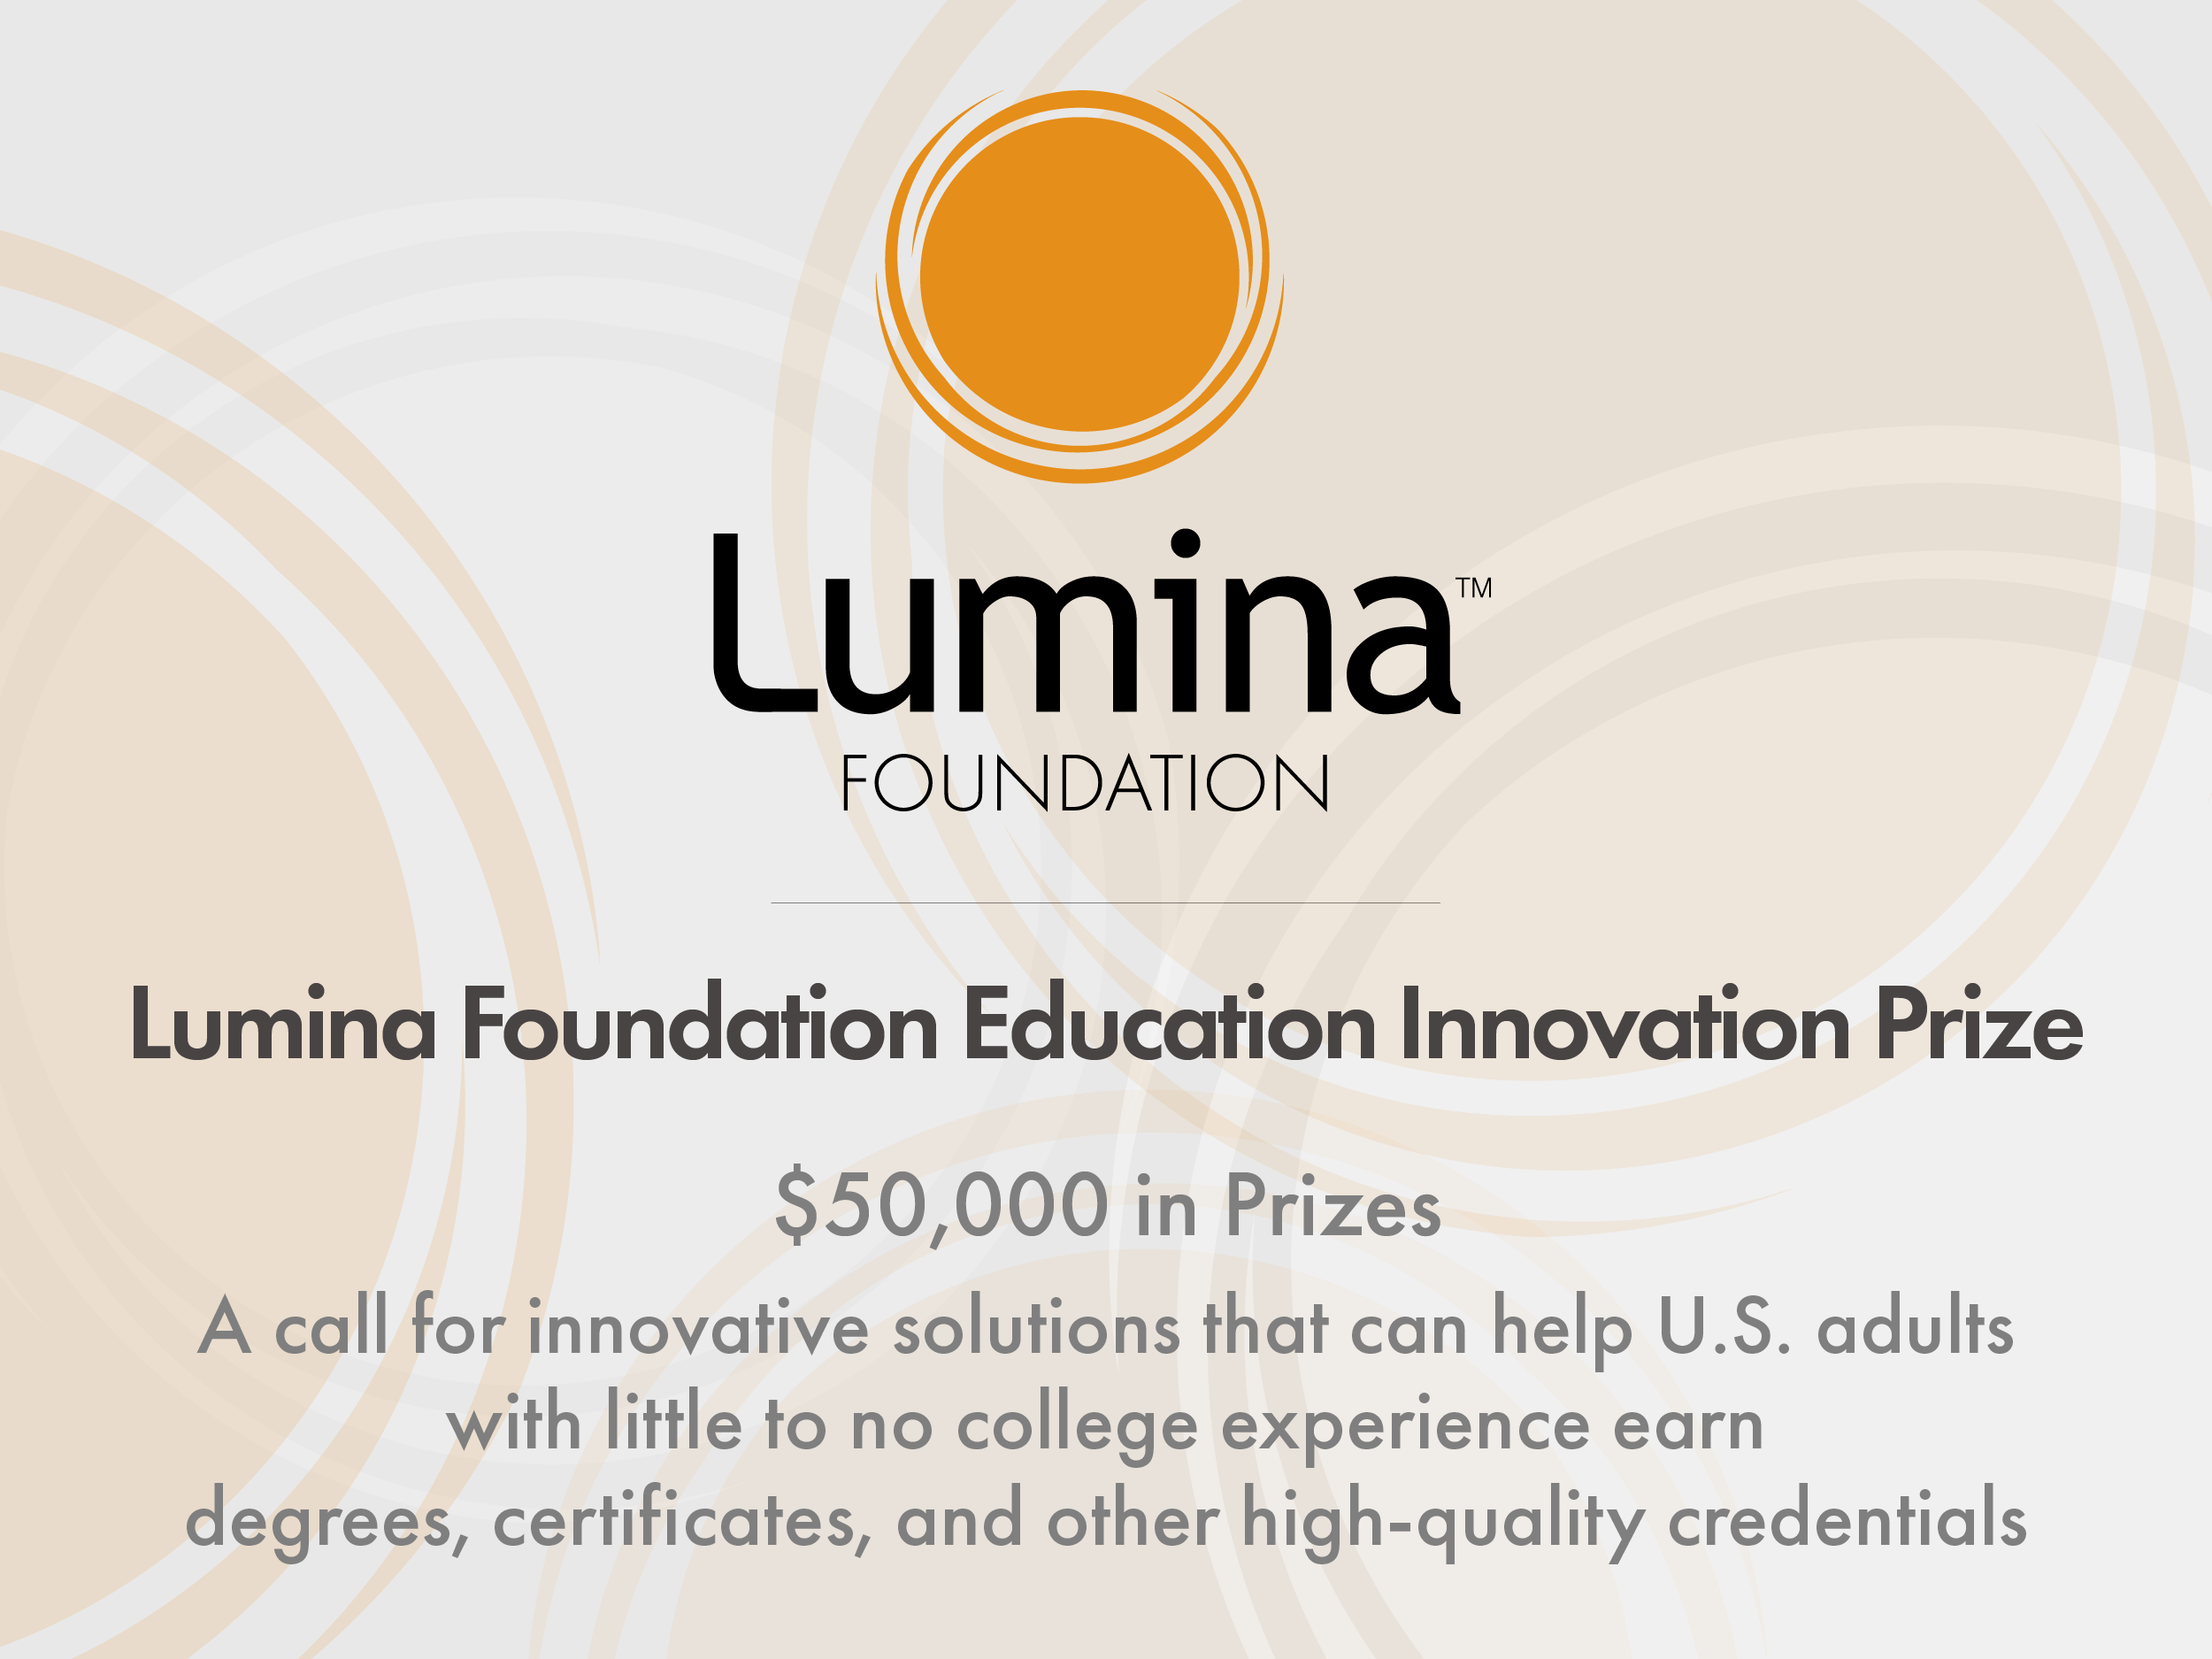 Lumina foundation for education investment security valuation and risk analysis assessing value in investment decision-making pdf